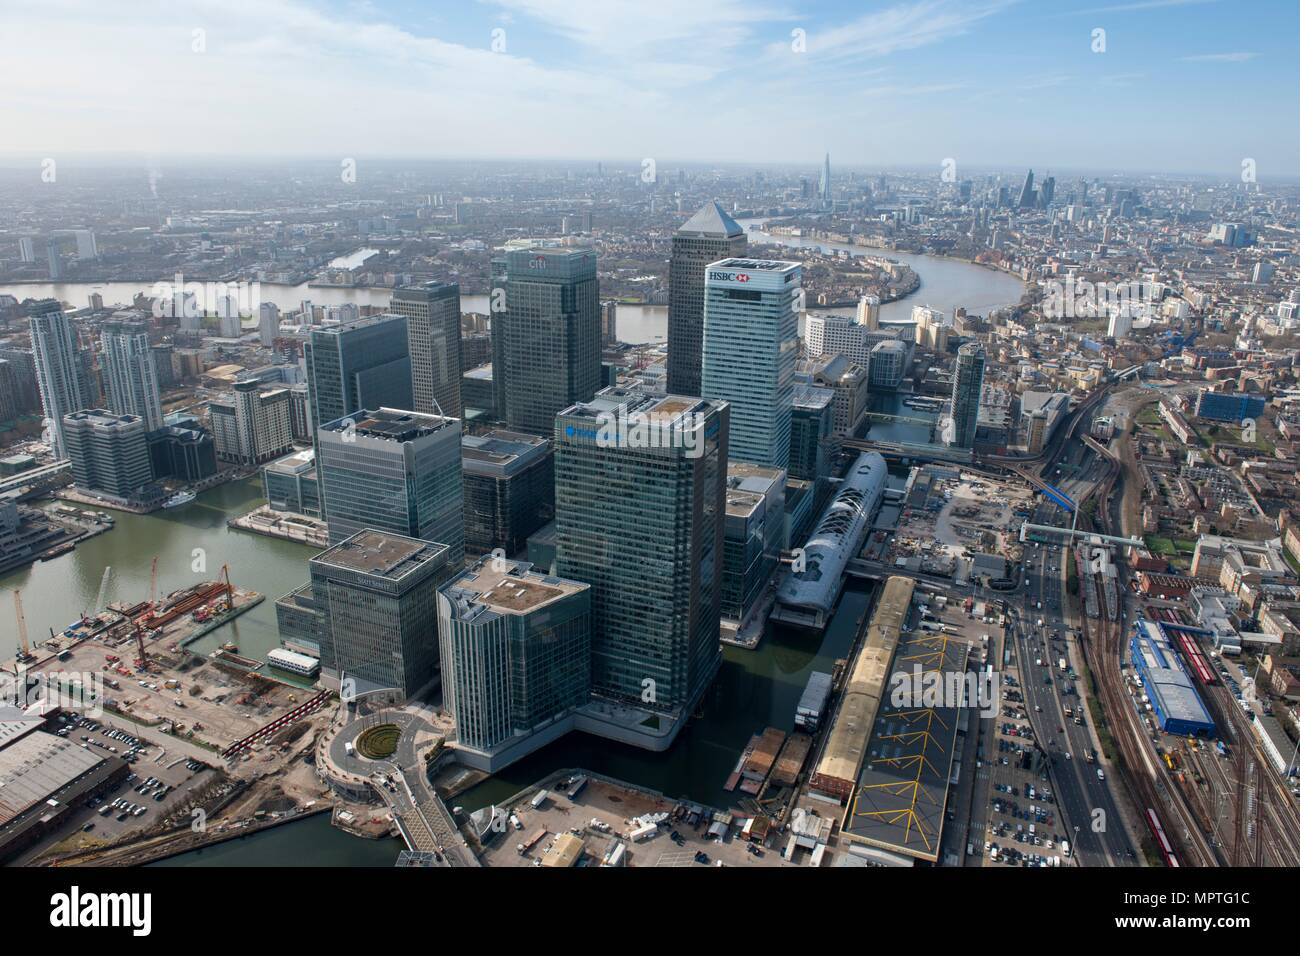 Canary Wharf, Isle of Dogs, Tower Hamlets, London, 2015. Artist: Damian Grady. - Stock Image